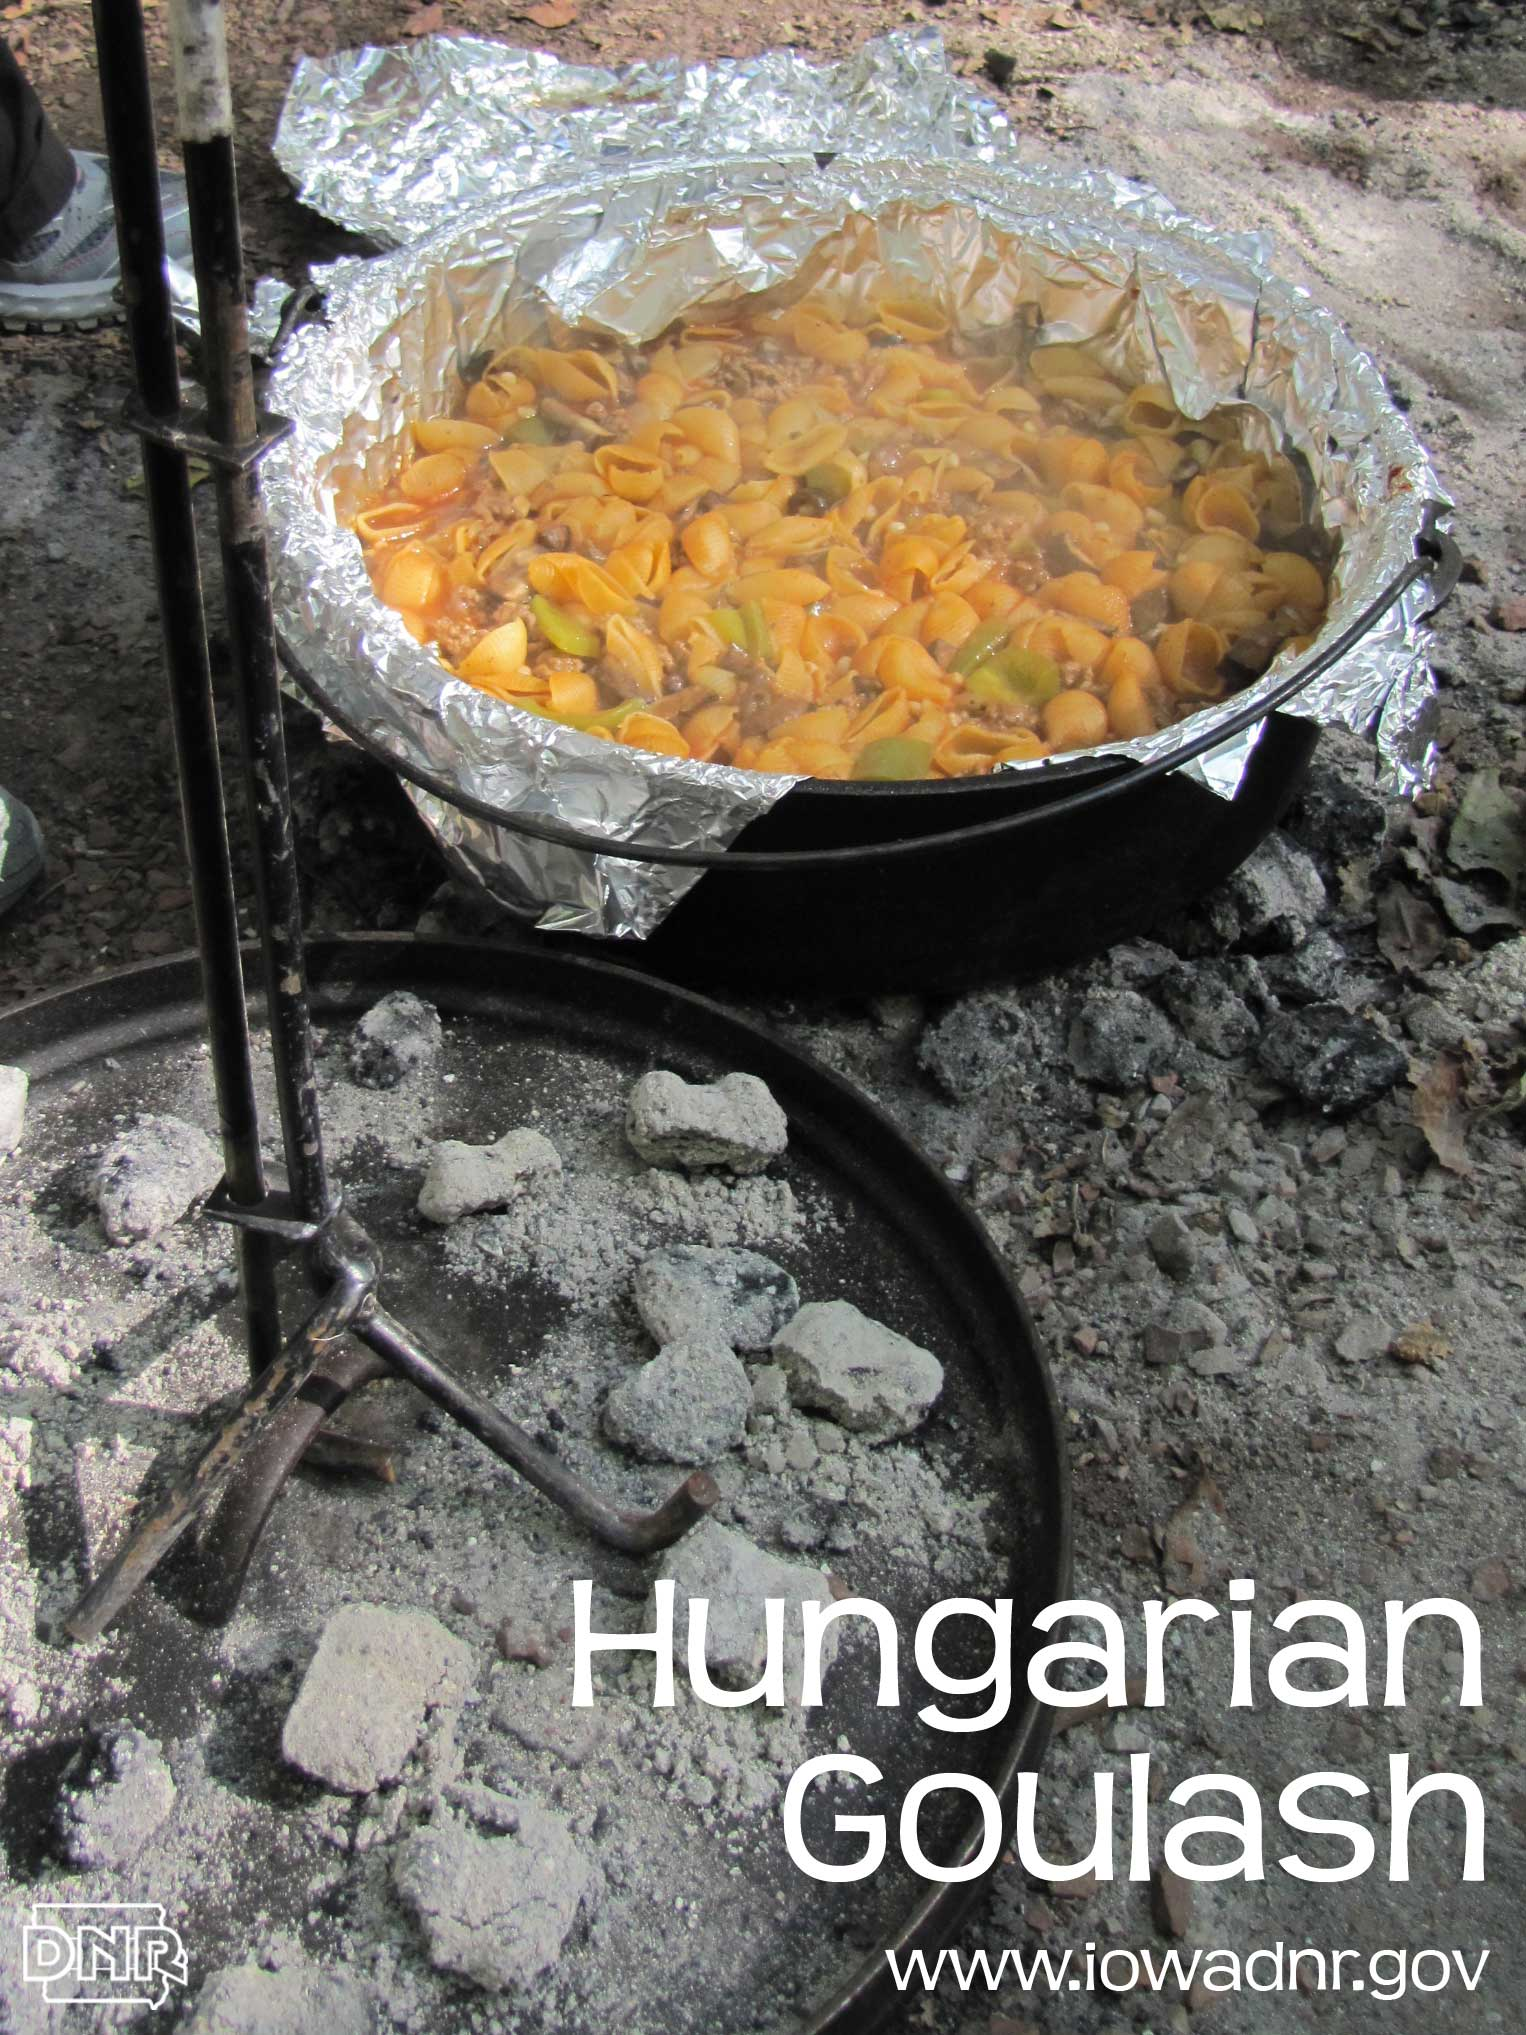 Recipe for Dutch oven Hungarian goulash from the Iowa DNR